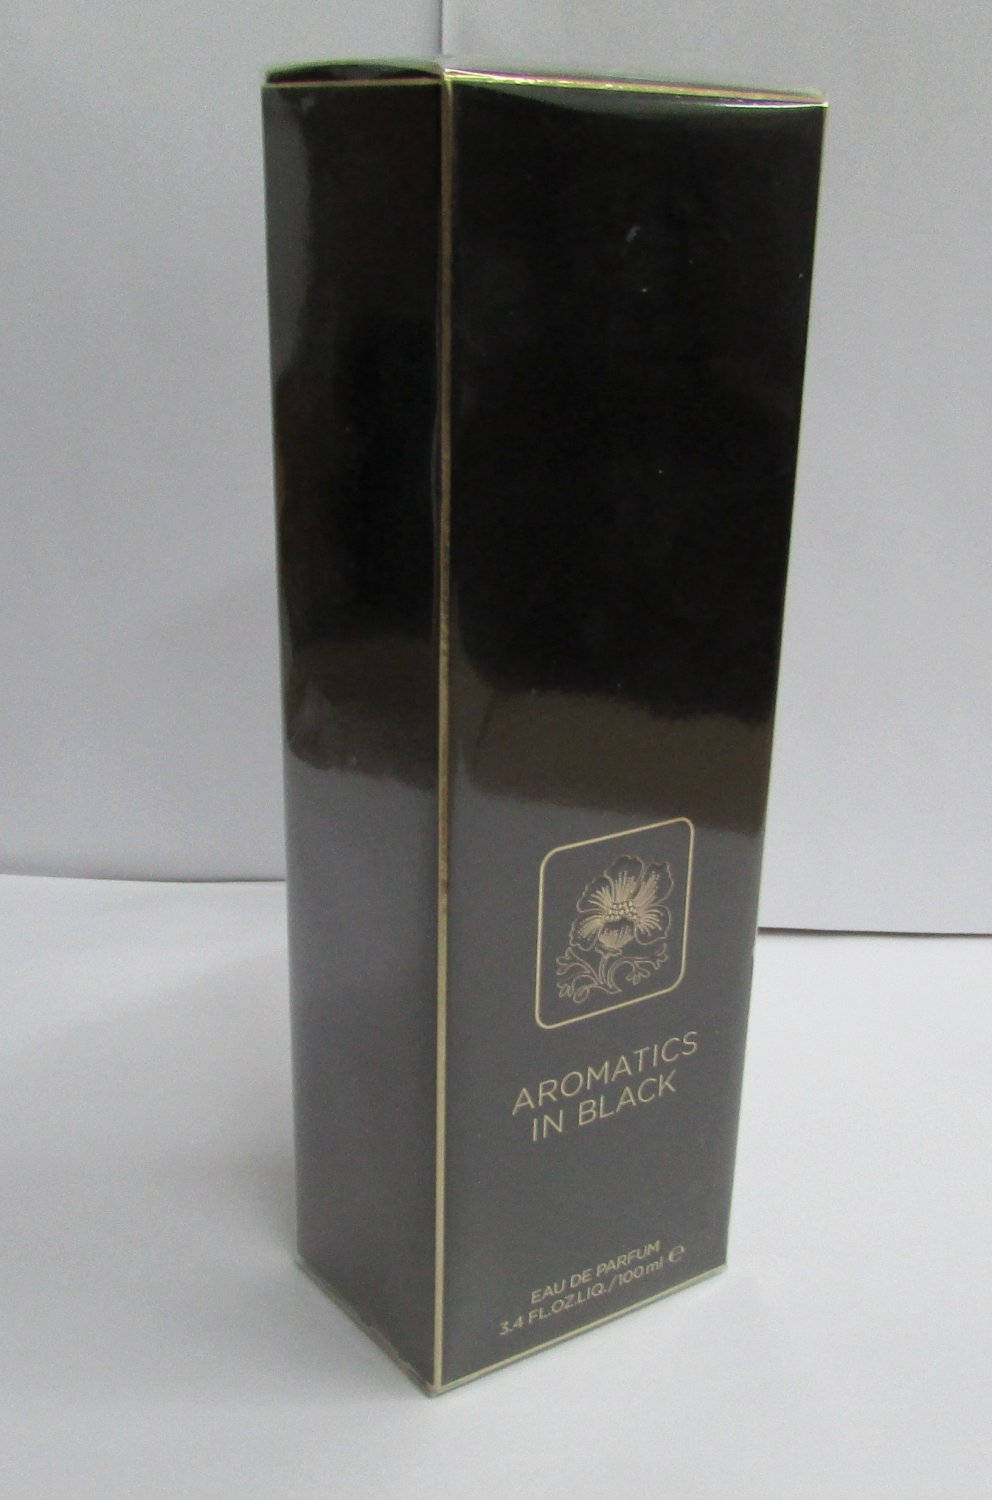 Clinique Aromatics In Black EDP Eau de Parfum 3.4 oz 100ml Women NEW & ORIGINAL